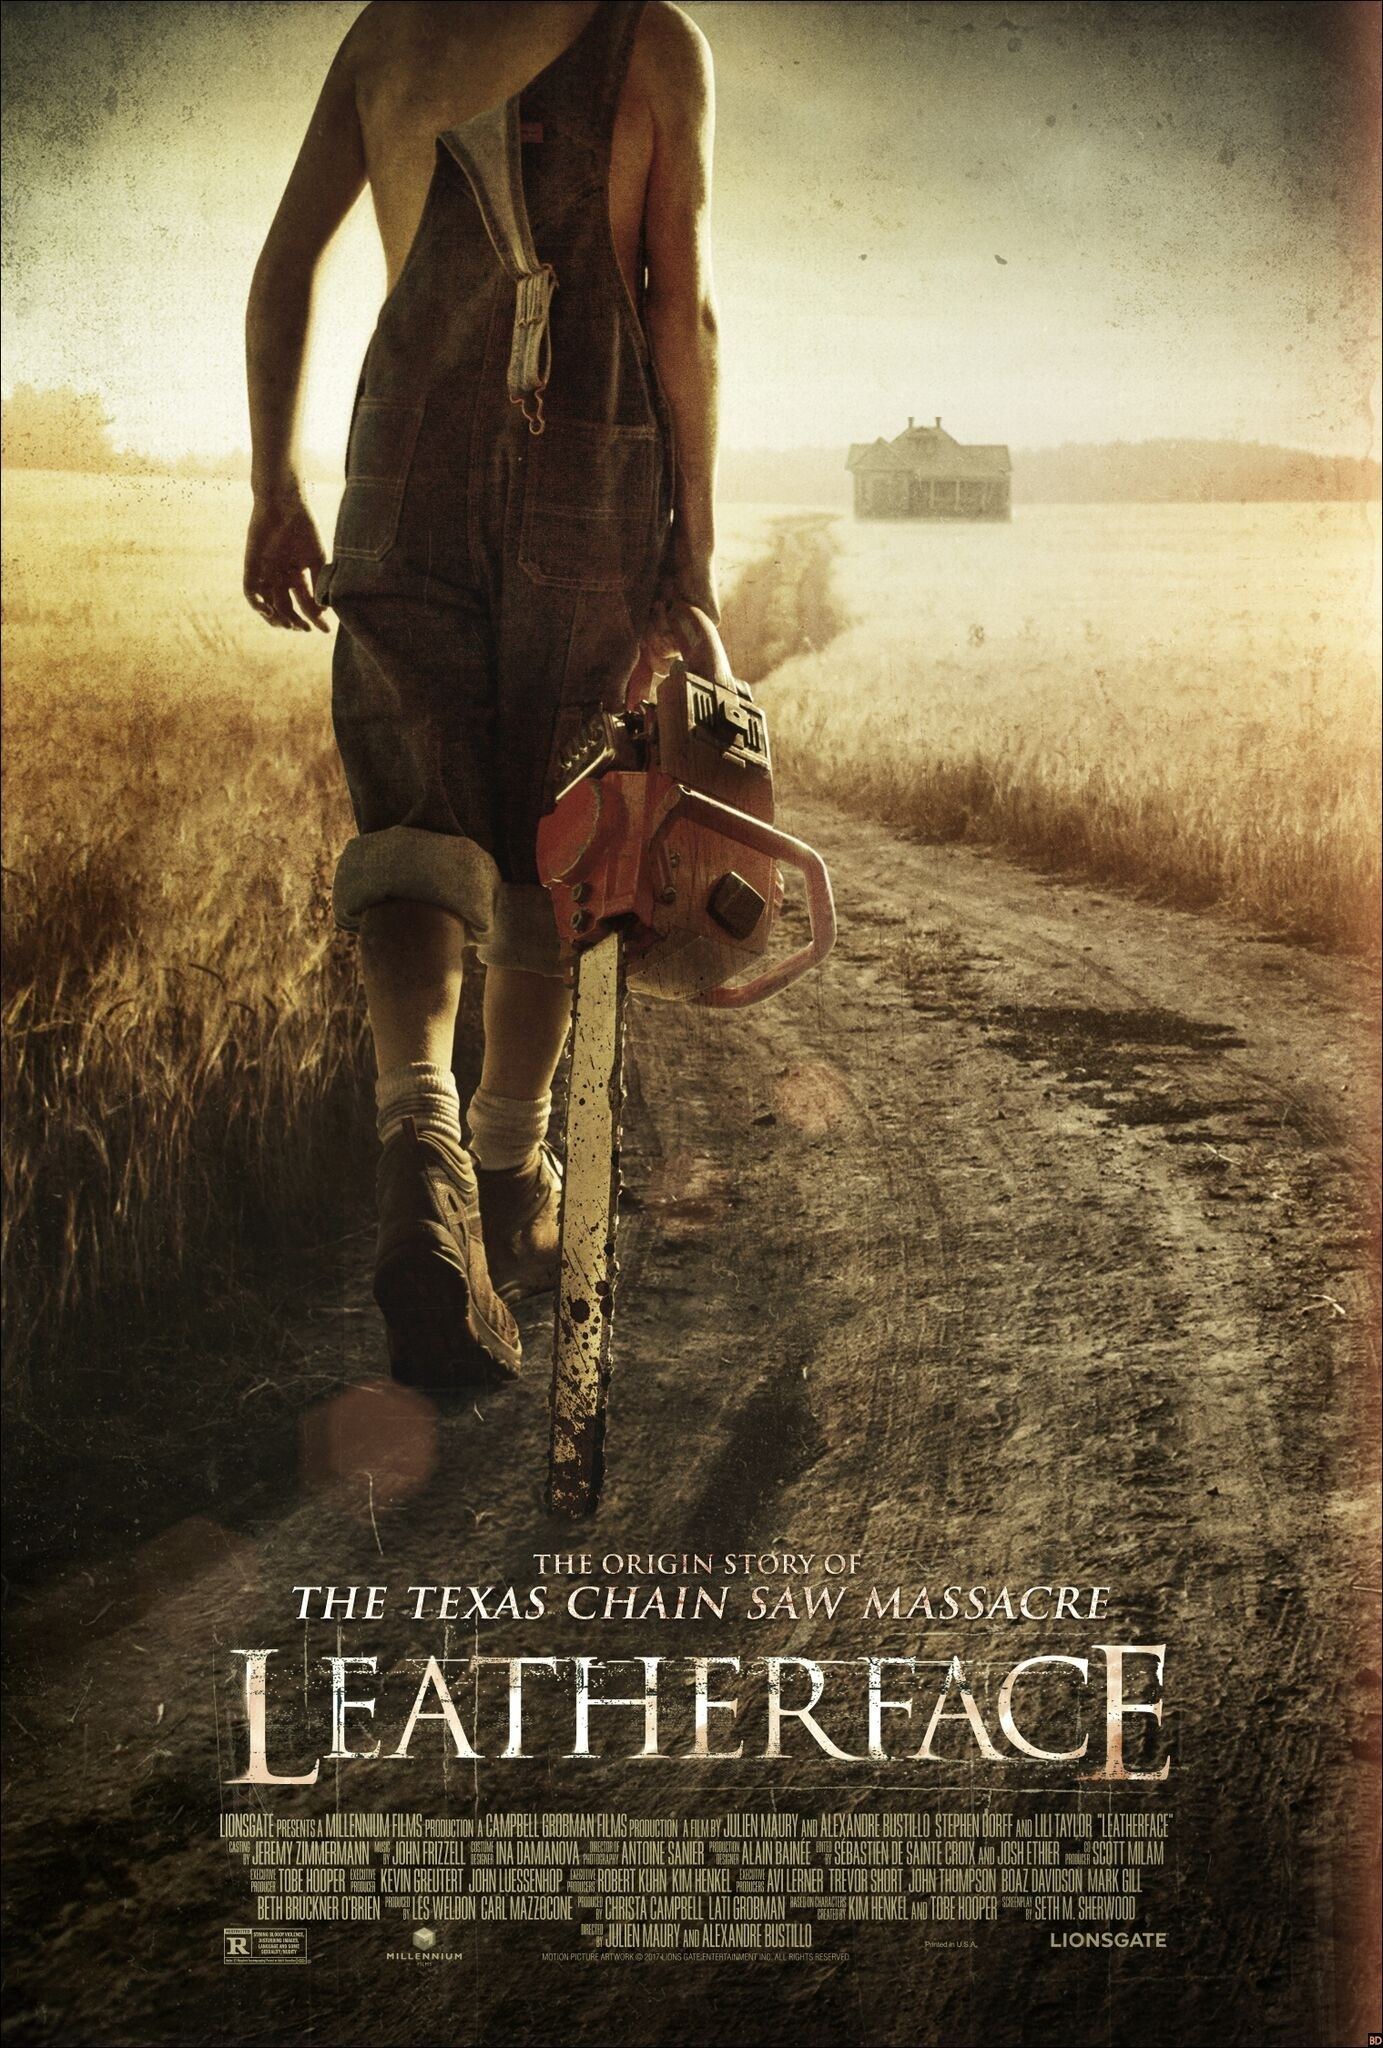 Horror Prequel Leatherface Gets One Final Poster Before The Killing Spree Begins